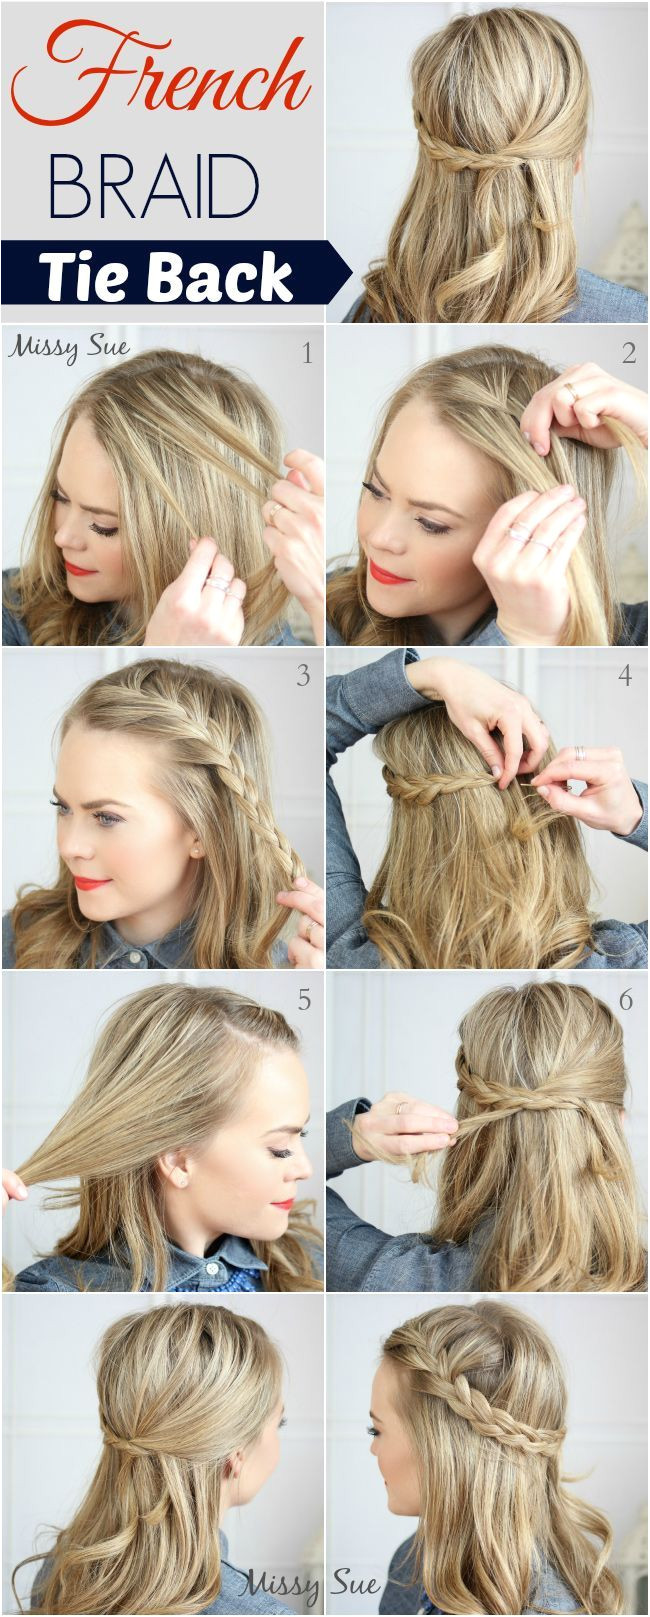 13 DIY Wedding Hairstyles To Try Your Own french braid tie back